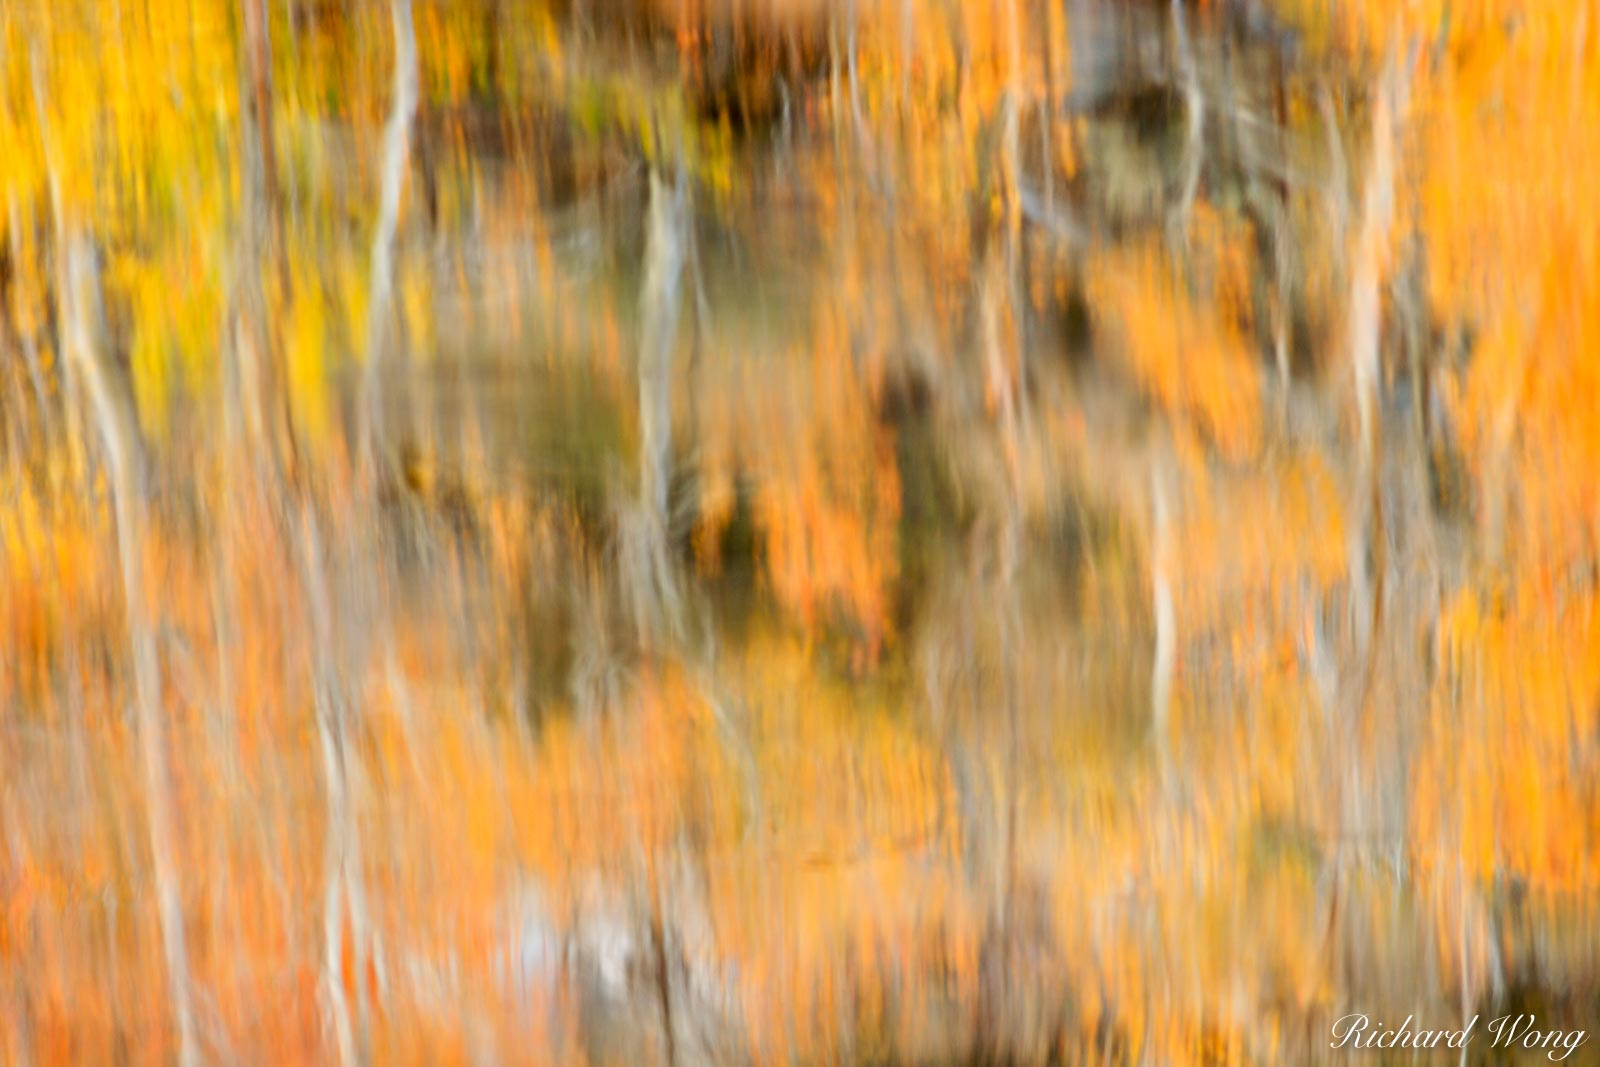 peter lik one style photo, north lake fall color water reflection abstract, eastern sierra, california, photo, photo